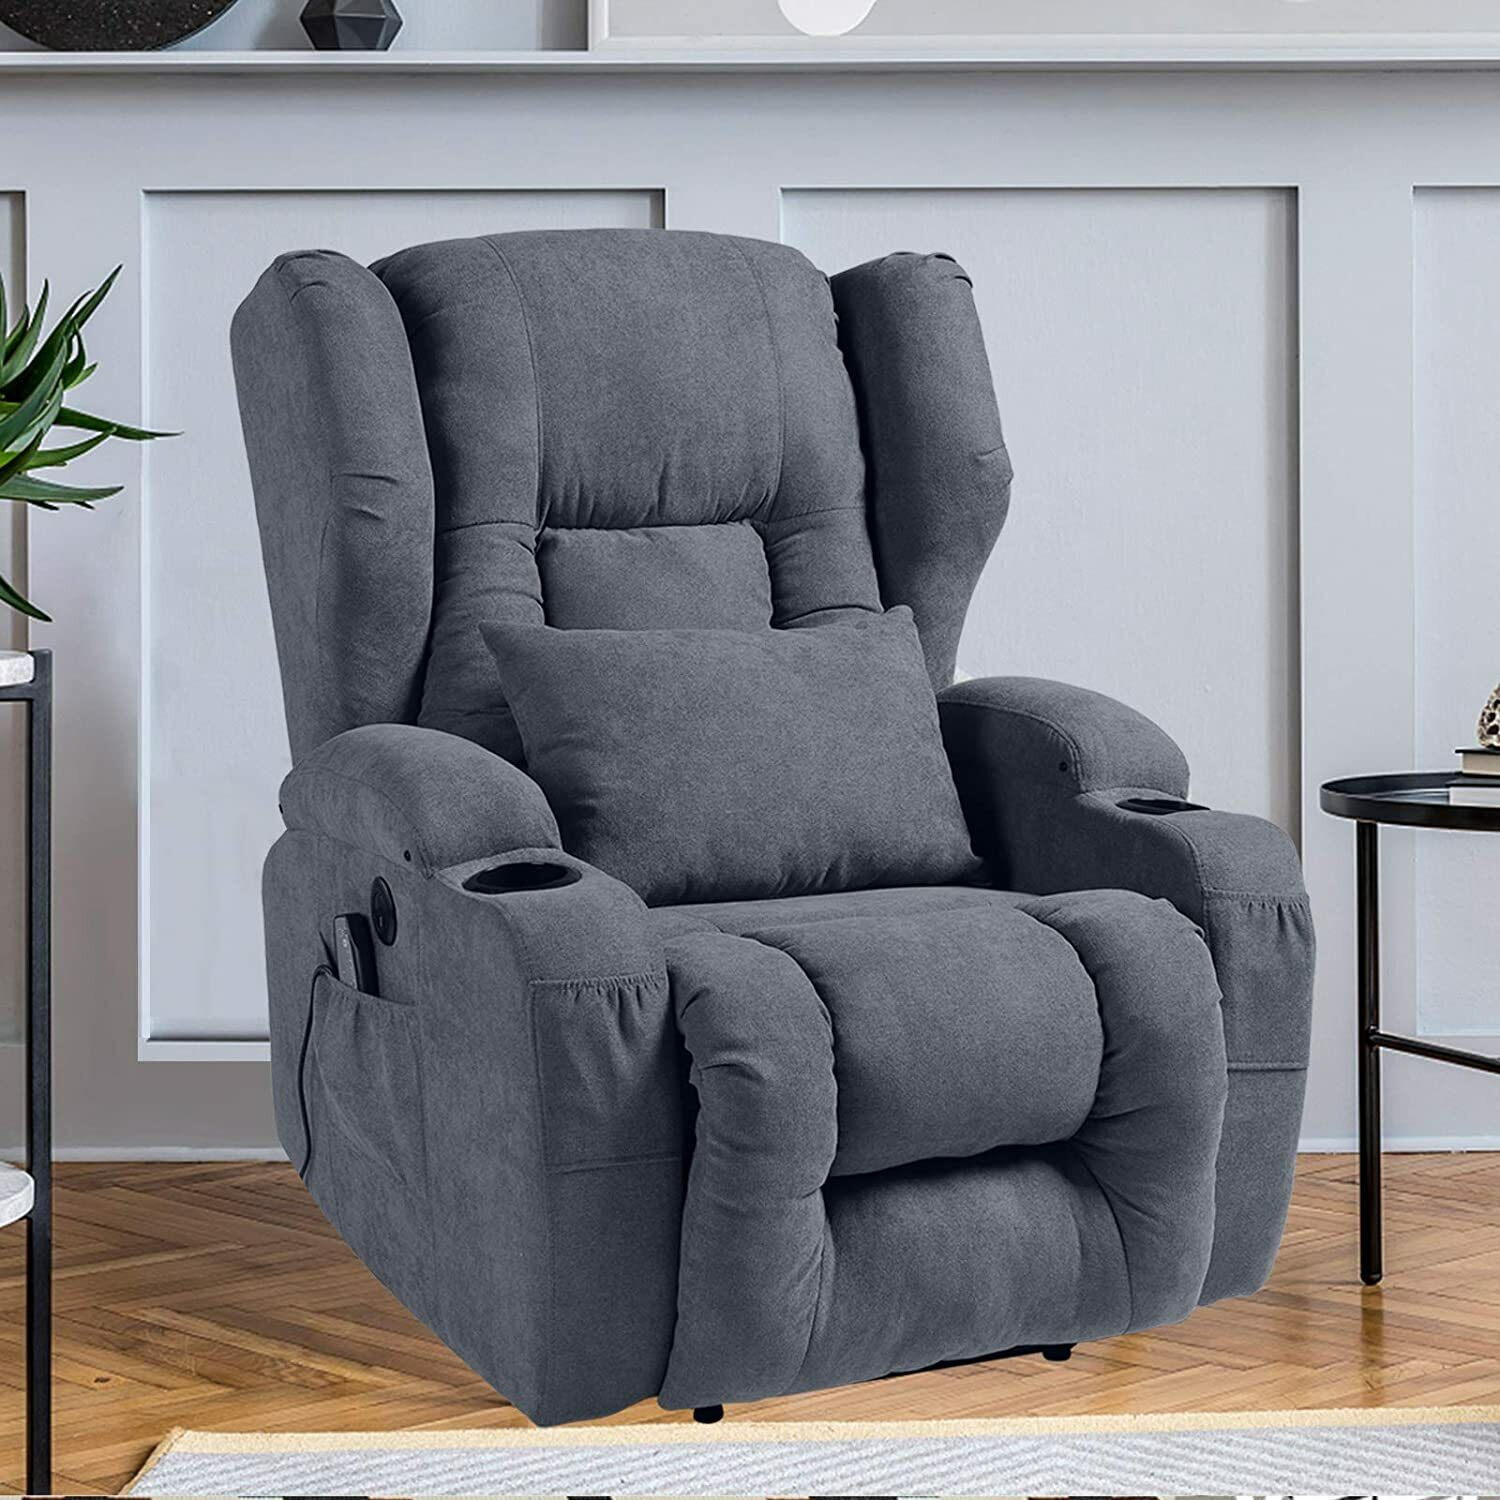 Fabric Recliner Chair with Heat and Massage w/ USB Charge Po